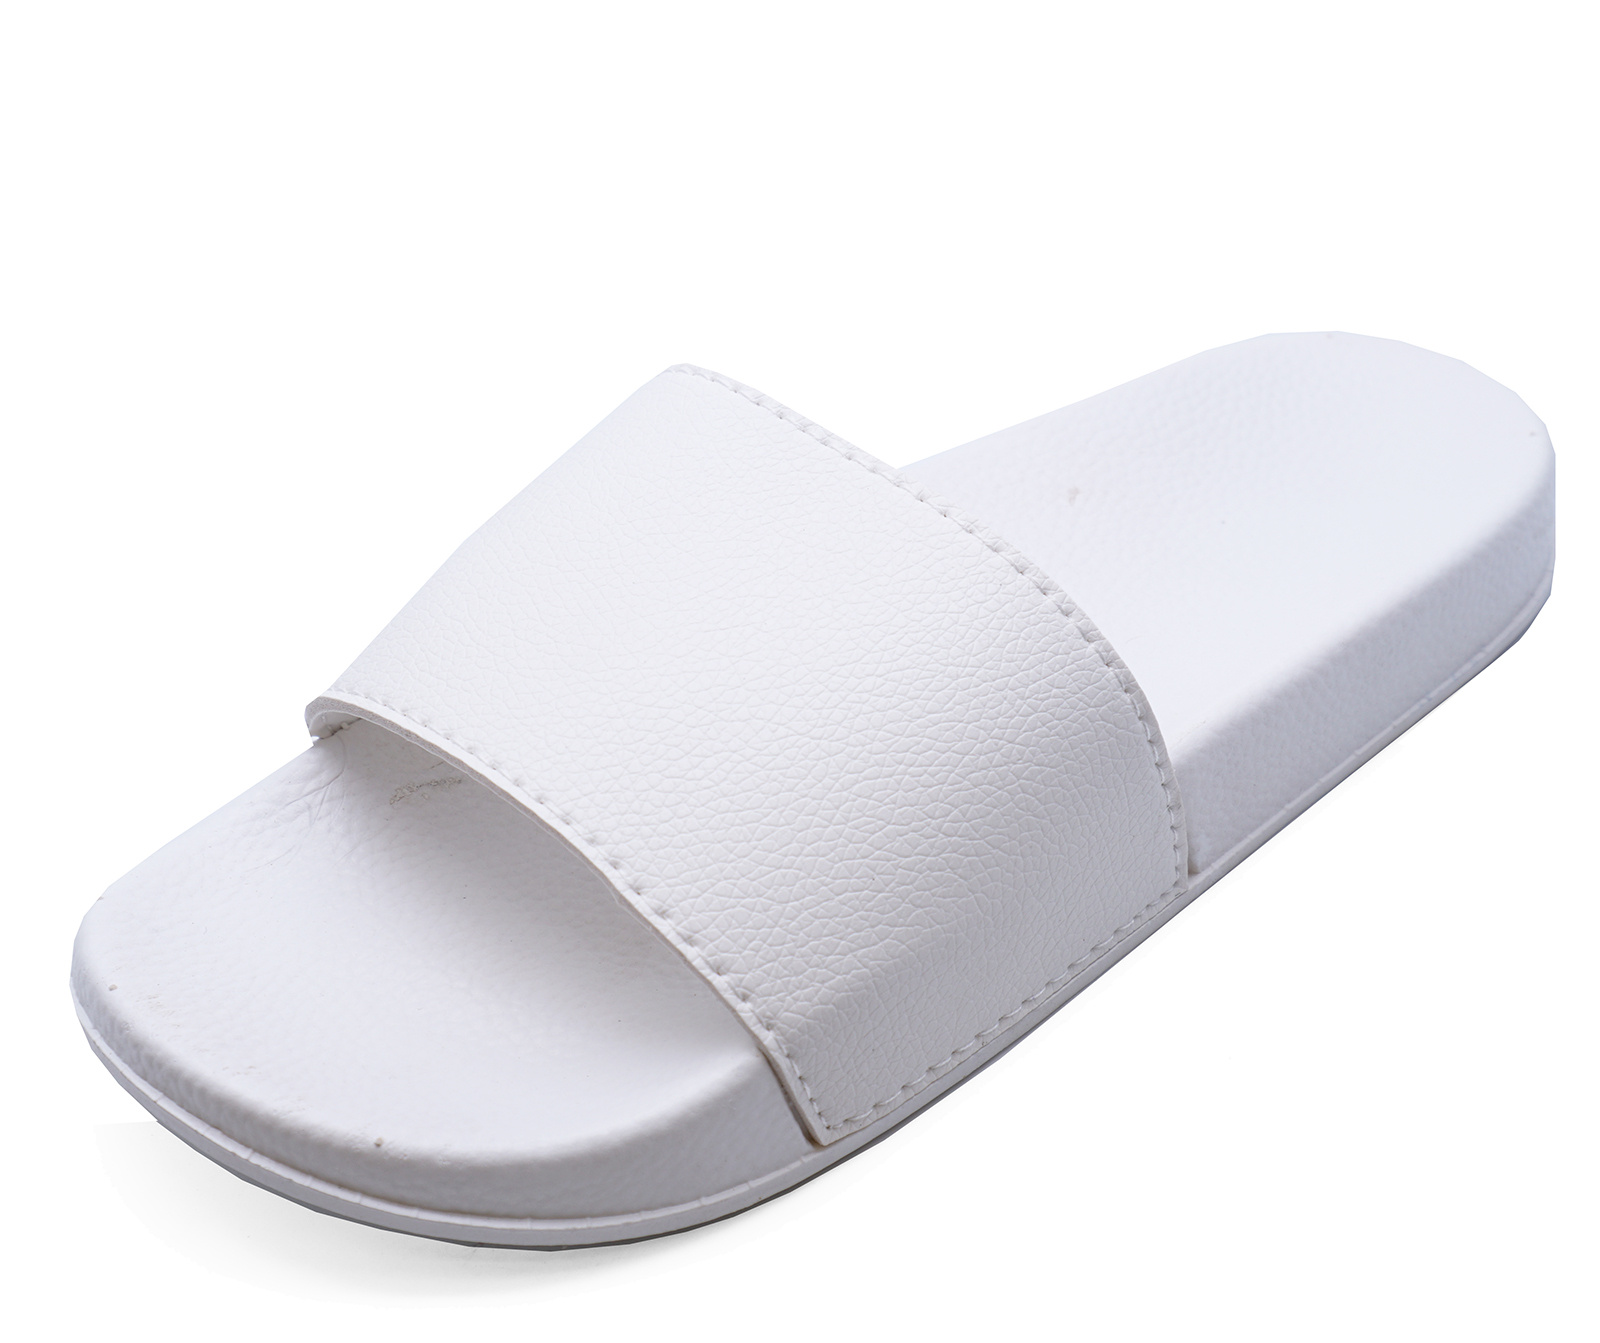 2bf6a5eaf9aa LADIES WHITE SLIP-ON SLIDERS COMFY FLAT MULES HOLIDAY SANDALS POOL ...